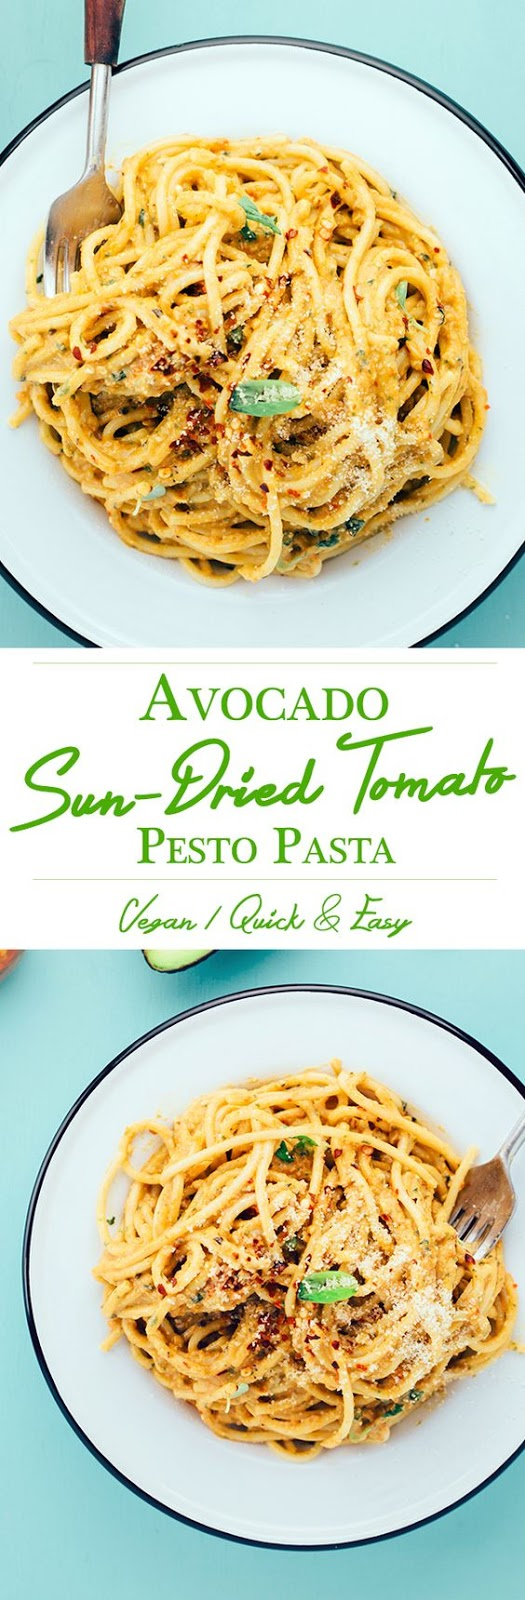 ★★★★☆ 7561 ratings | AVOCADO AND SUN-DRIED TOMATO PESTO PASTA #HEALTHYFOOD #EASYRECIPES #DINNER #LAUCH #DELICIOUS #EASY #HOLIDAYS #RECIPE #AVOCADO #SUNDRIED #TOMATO #PESTO #PASTA